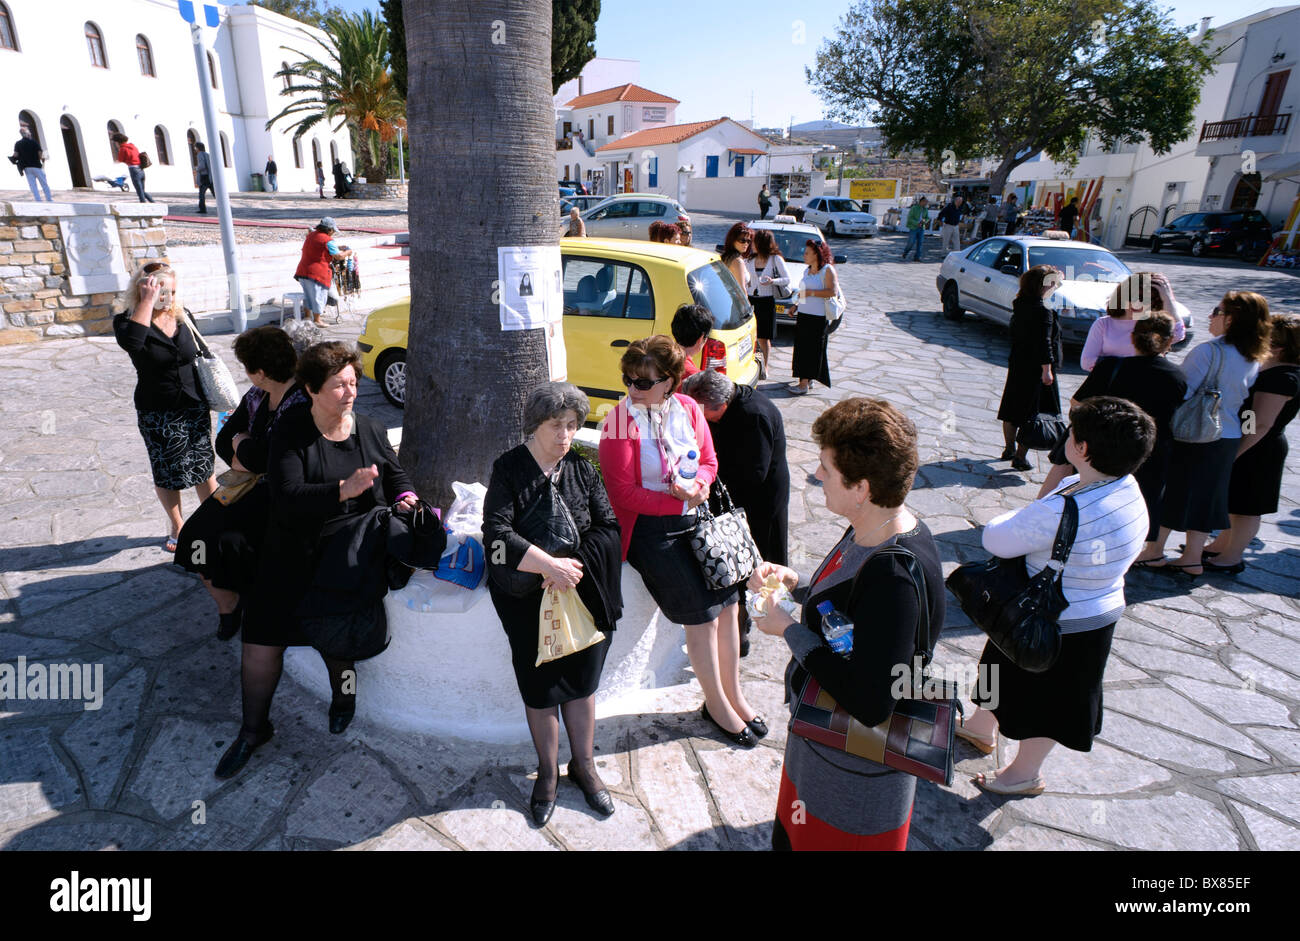 Group of women waiting outside Panagia Evangelistria, the most revered religious shrine in Greece. - Stock Image